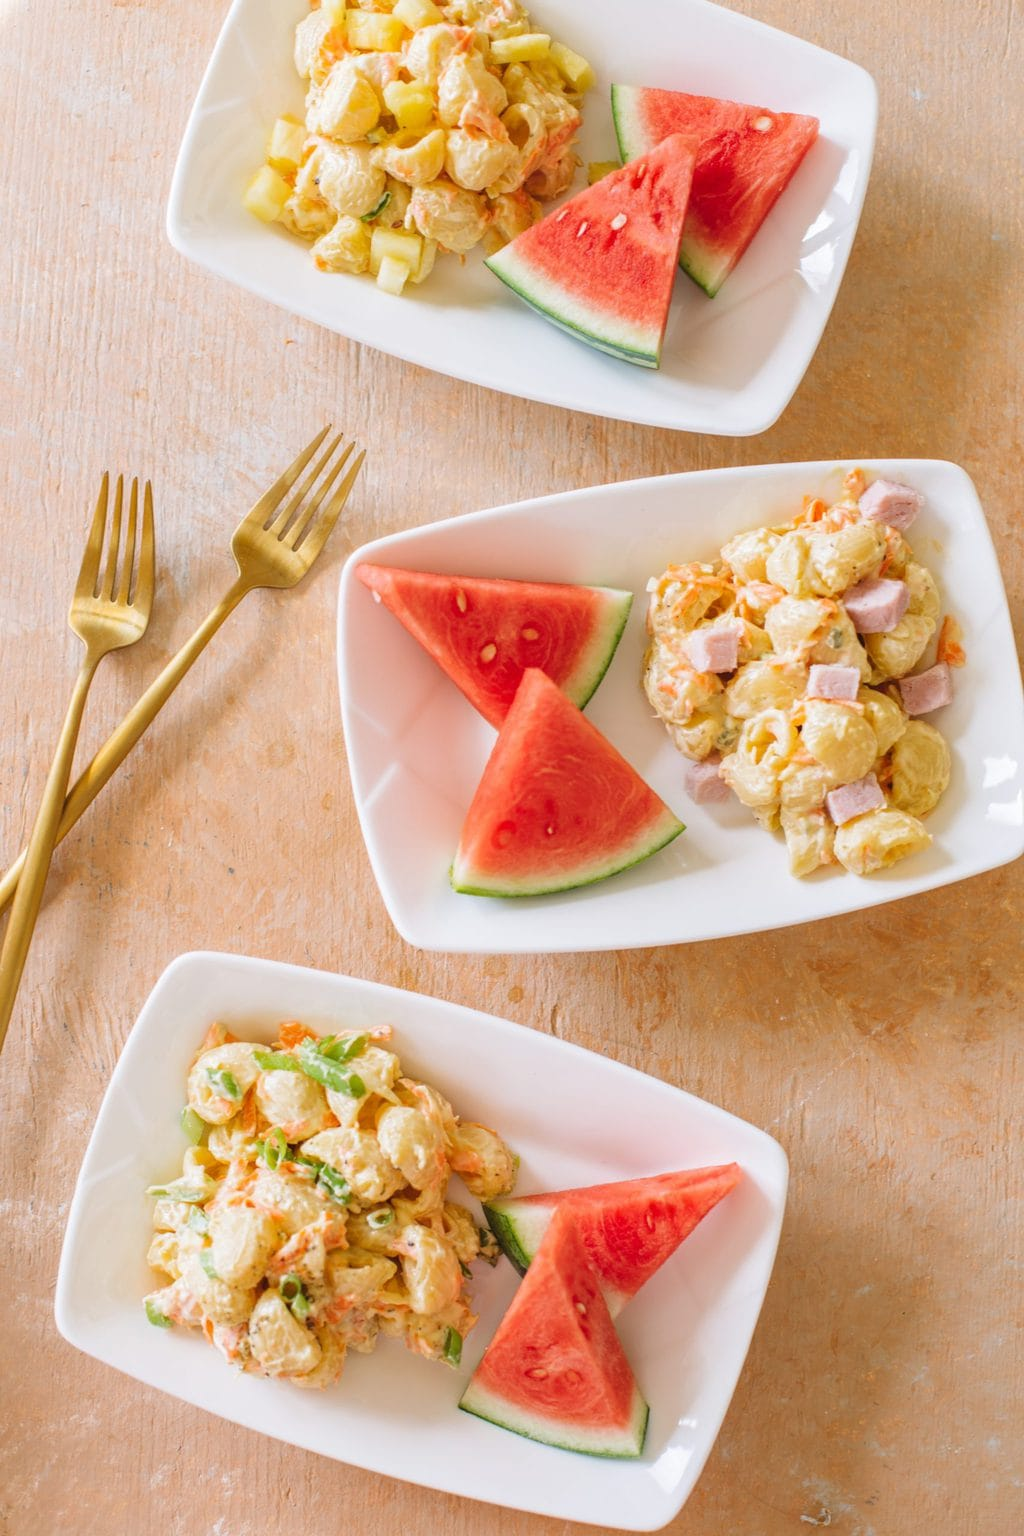 Macaroni salad served on small white dishes with watermelon pieces.